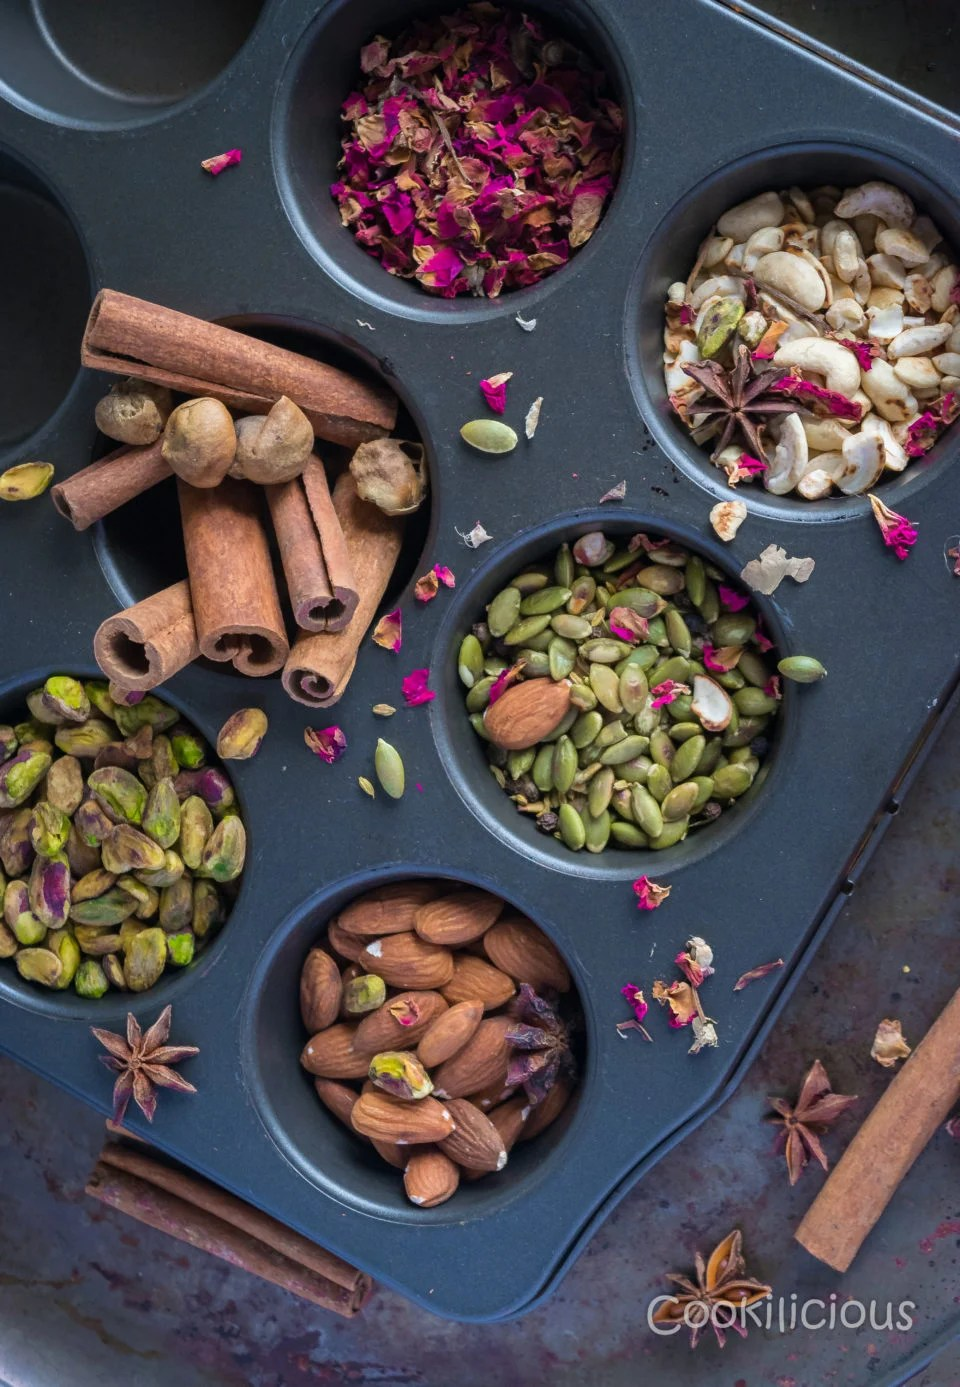 A muffin tray filled with different dry fruits like almonds, cashews, pistachios, cinnamon, pumpkin seeds